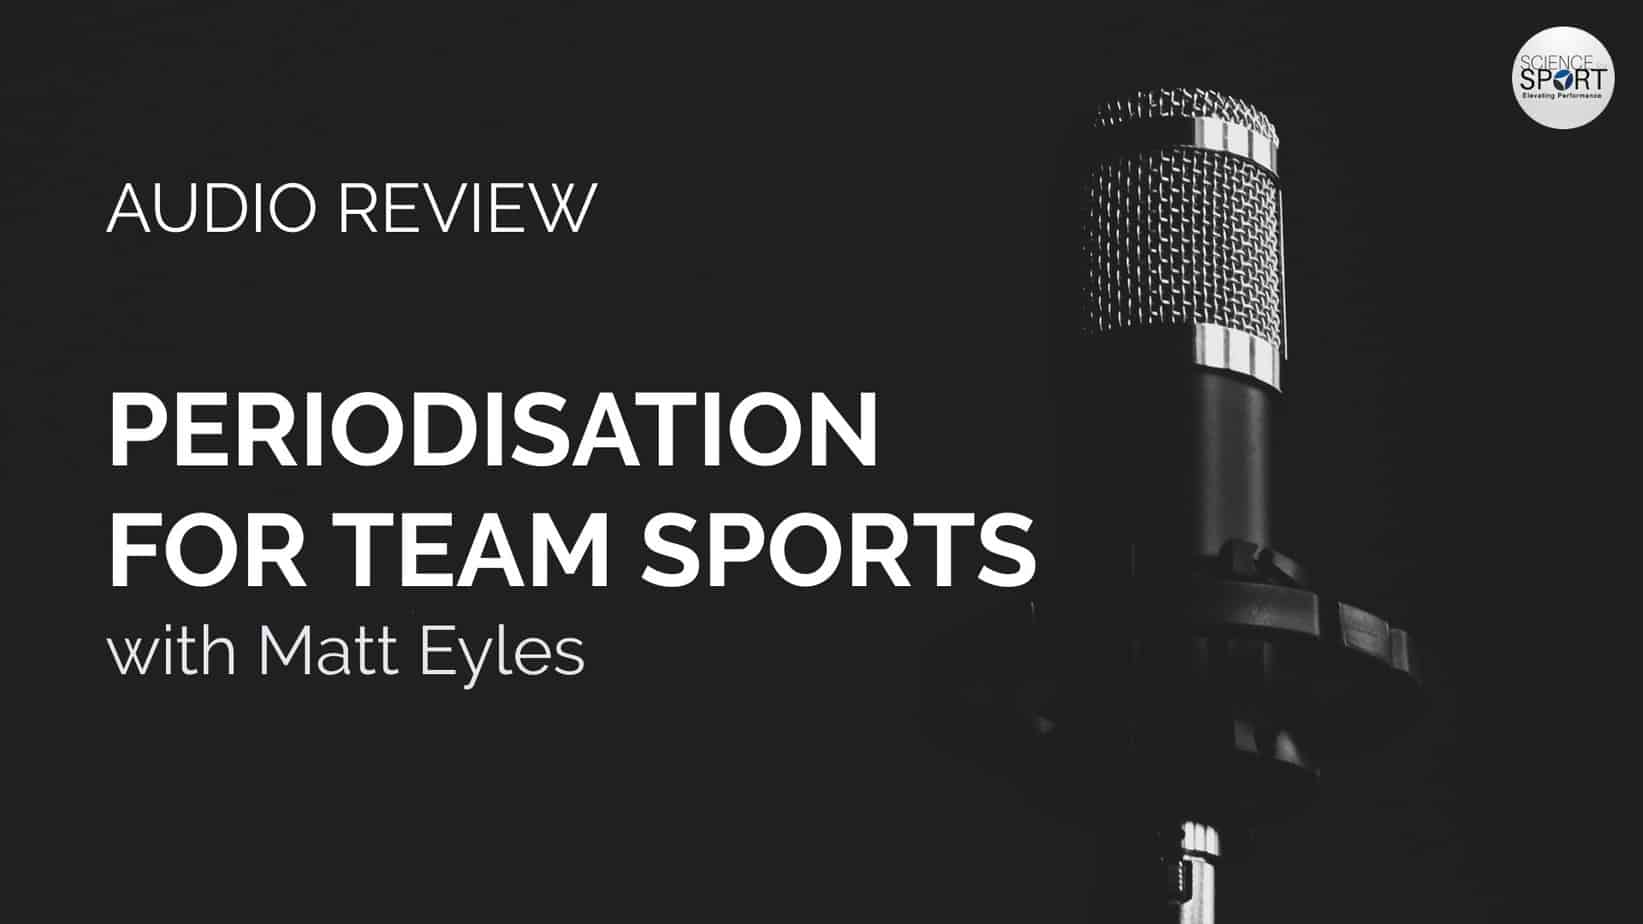 Periodisation for Team Sports - Audio Review